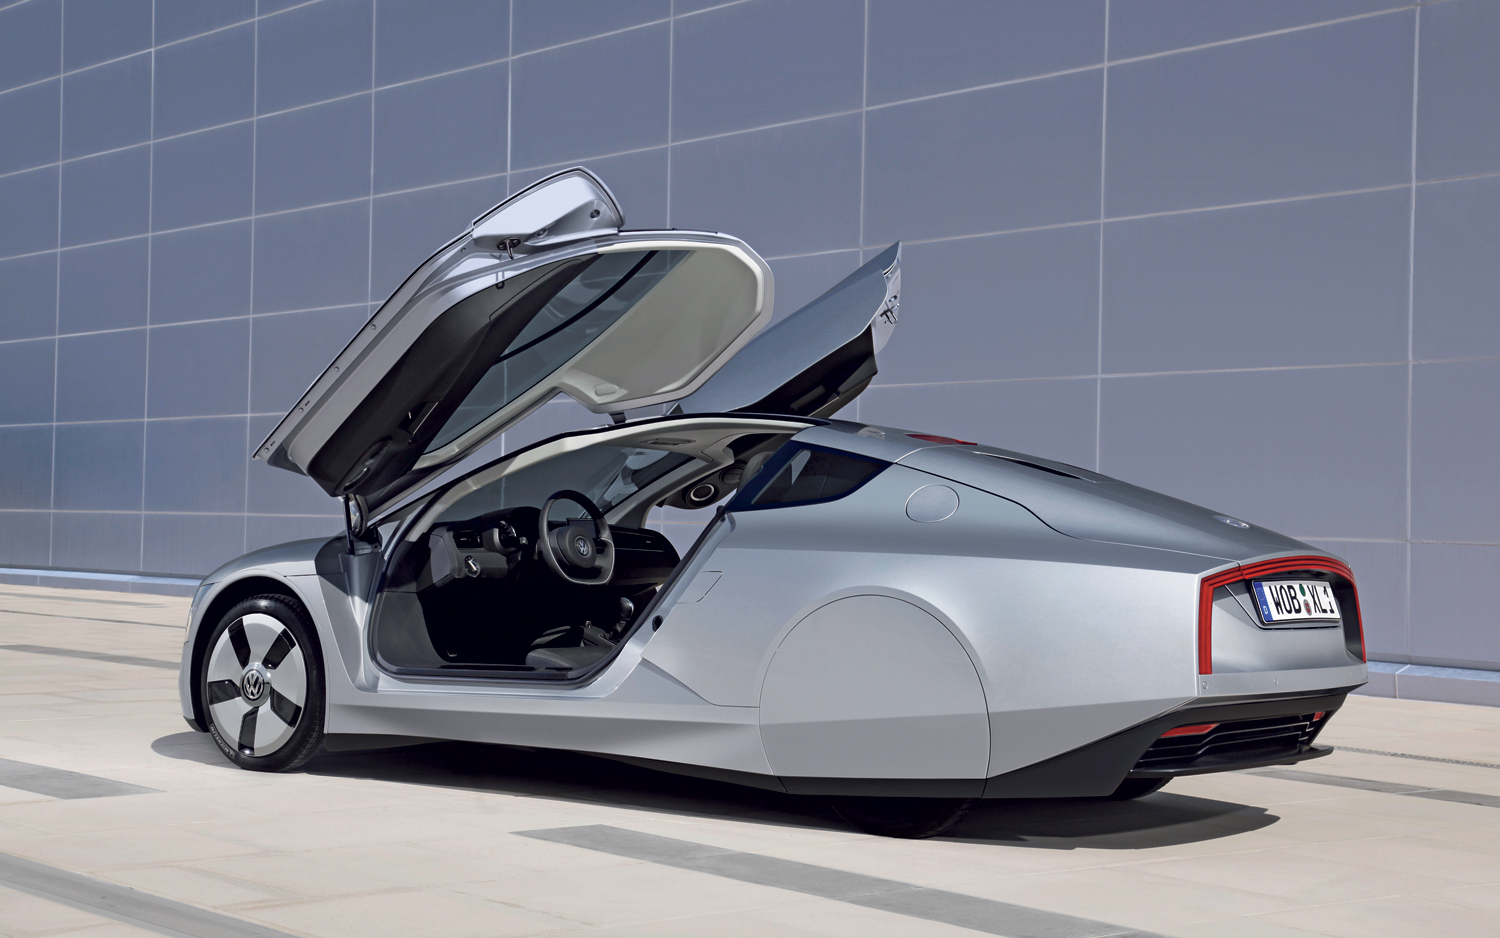 Volkswagen-XL1-rear-three-quarter